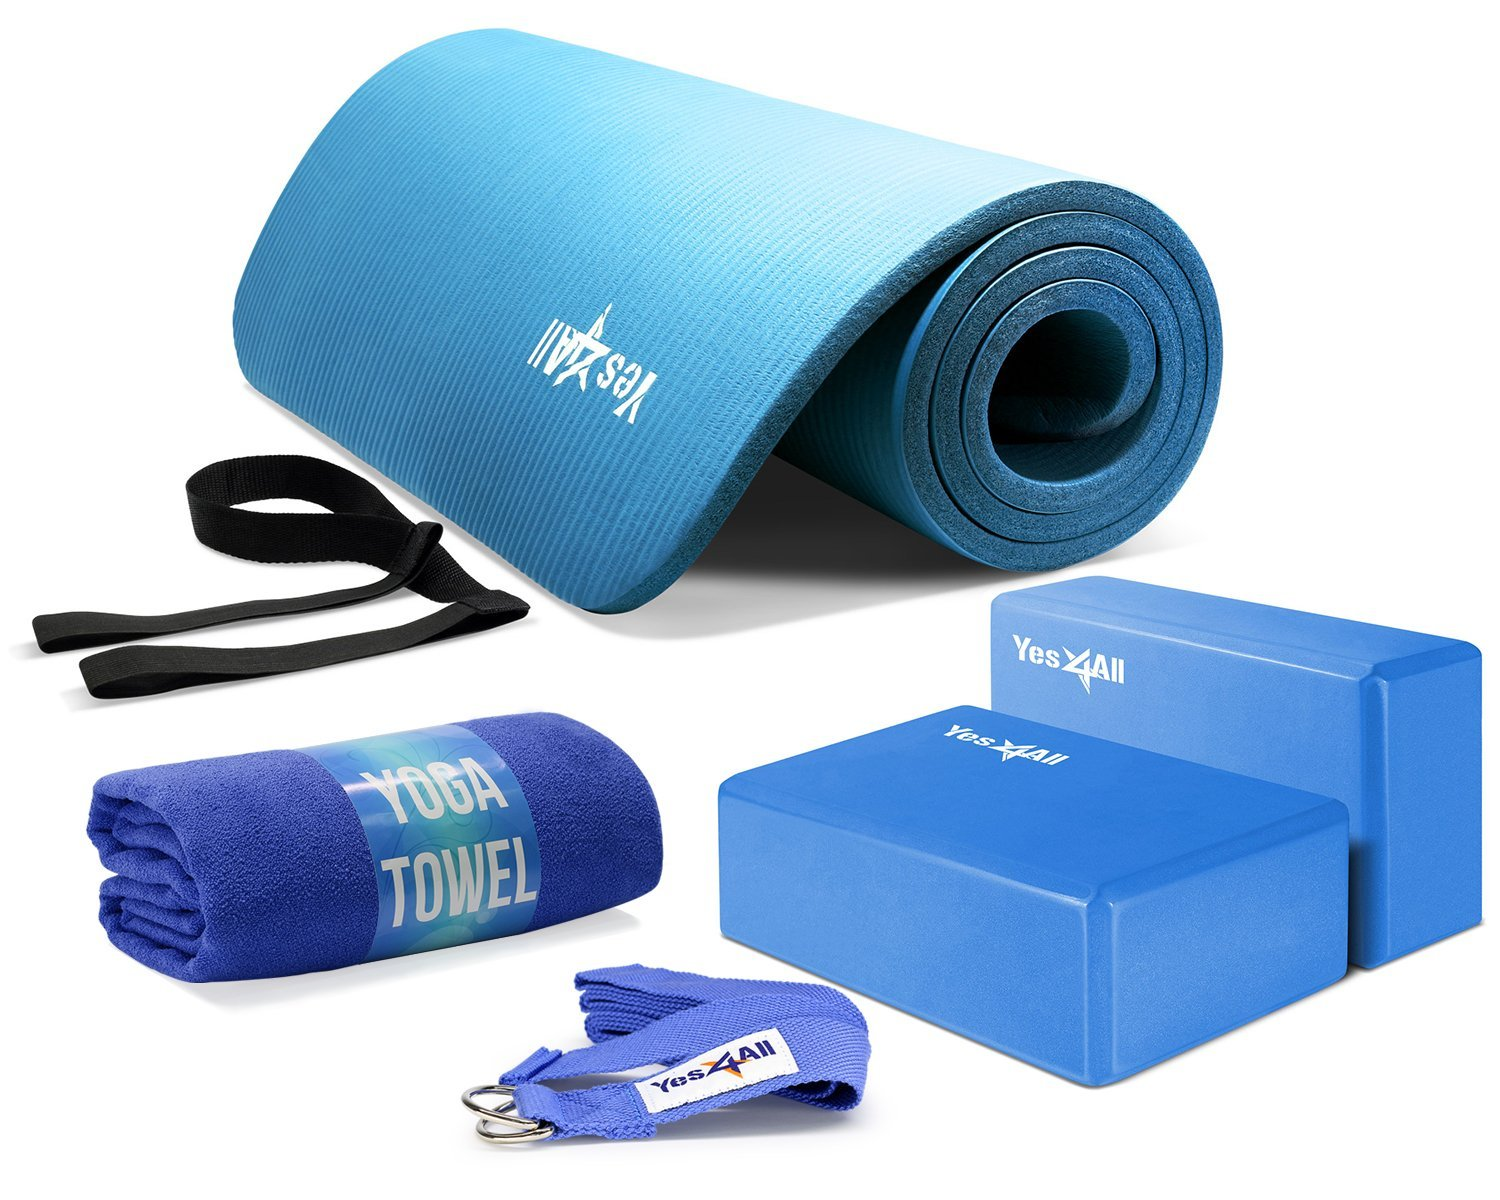 Yes4All NBR Yoga Starter Kit